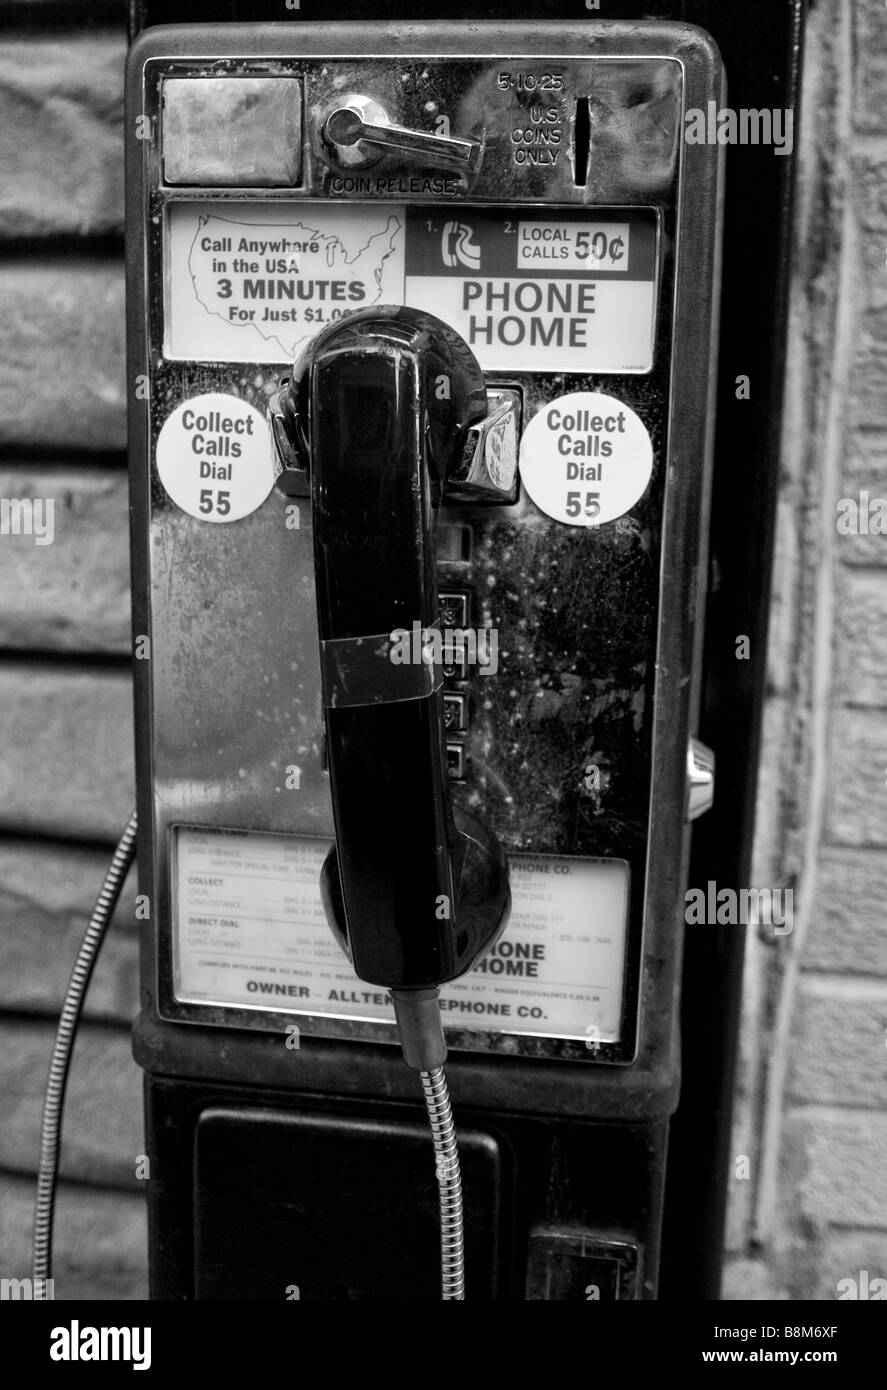 Pay Phone Black And White Stock Photos Images Alamy 3 Slot Payphone Wiring Diagram Old In The North End Of Boston Ma Usa Image